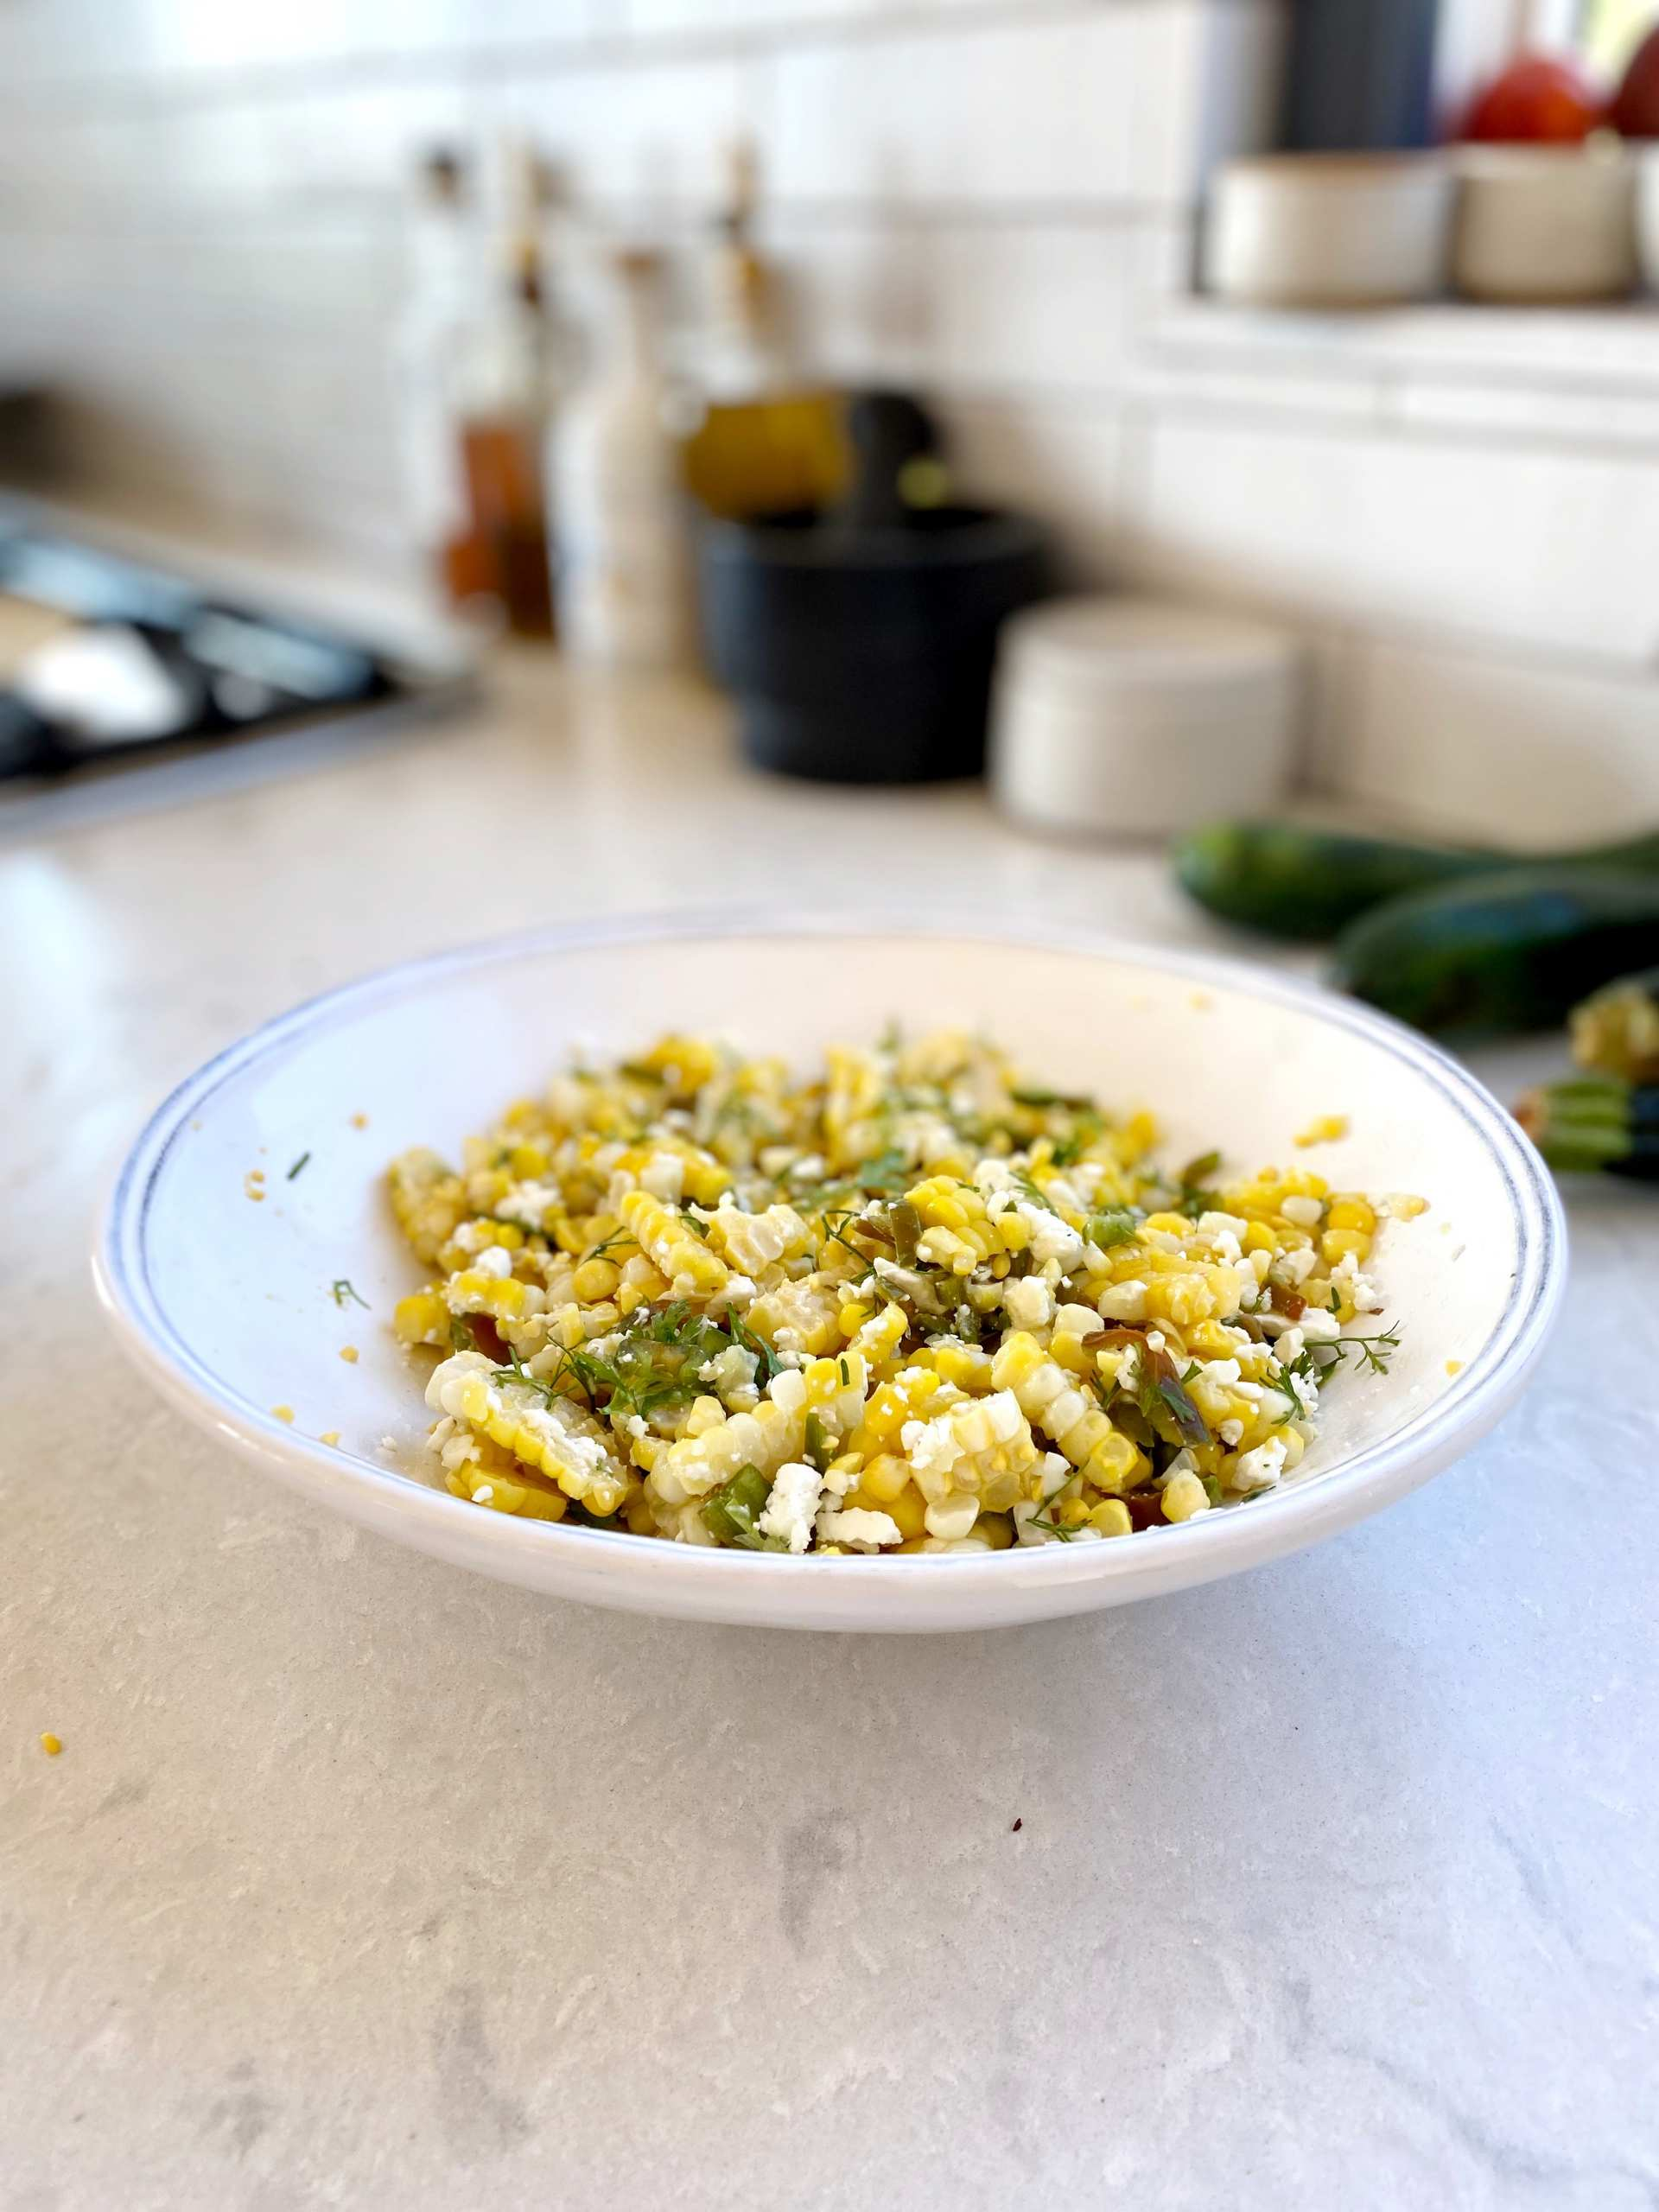 Healthy Grilled Corn Salad - a bowl of grilled corn corn salad with different toppings